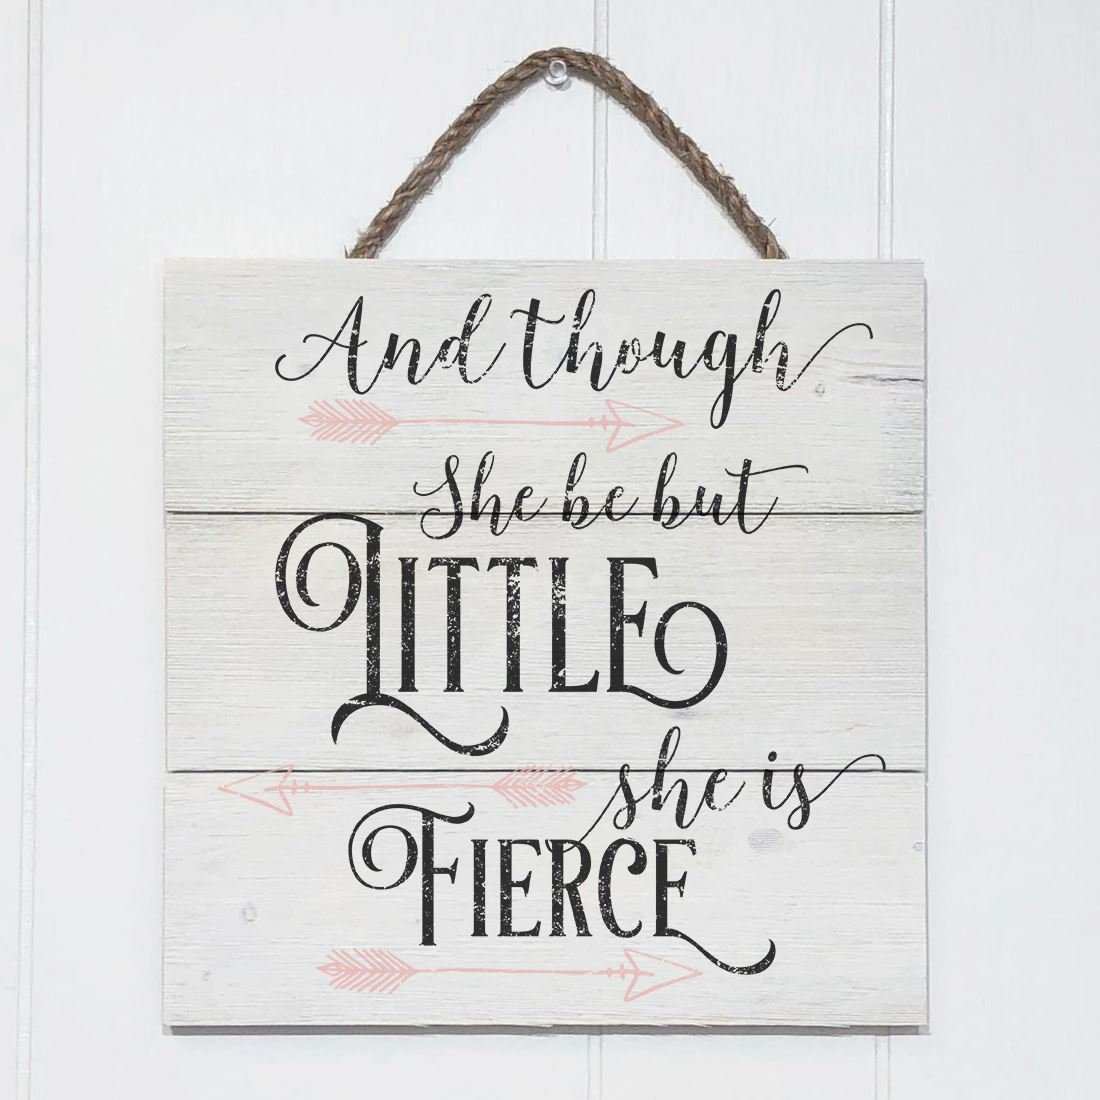 Artblox Rustic Nursery Room Sign and Though She Be but Little She is Fierce Quotes, Arrows Ornaments Artwork, Barn Wood Pallet Farmhouse Wooden Plaque Art Print, 10.5x10.5 - White by Artblox